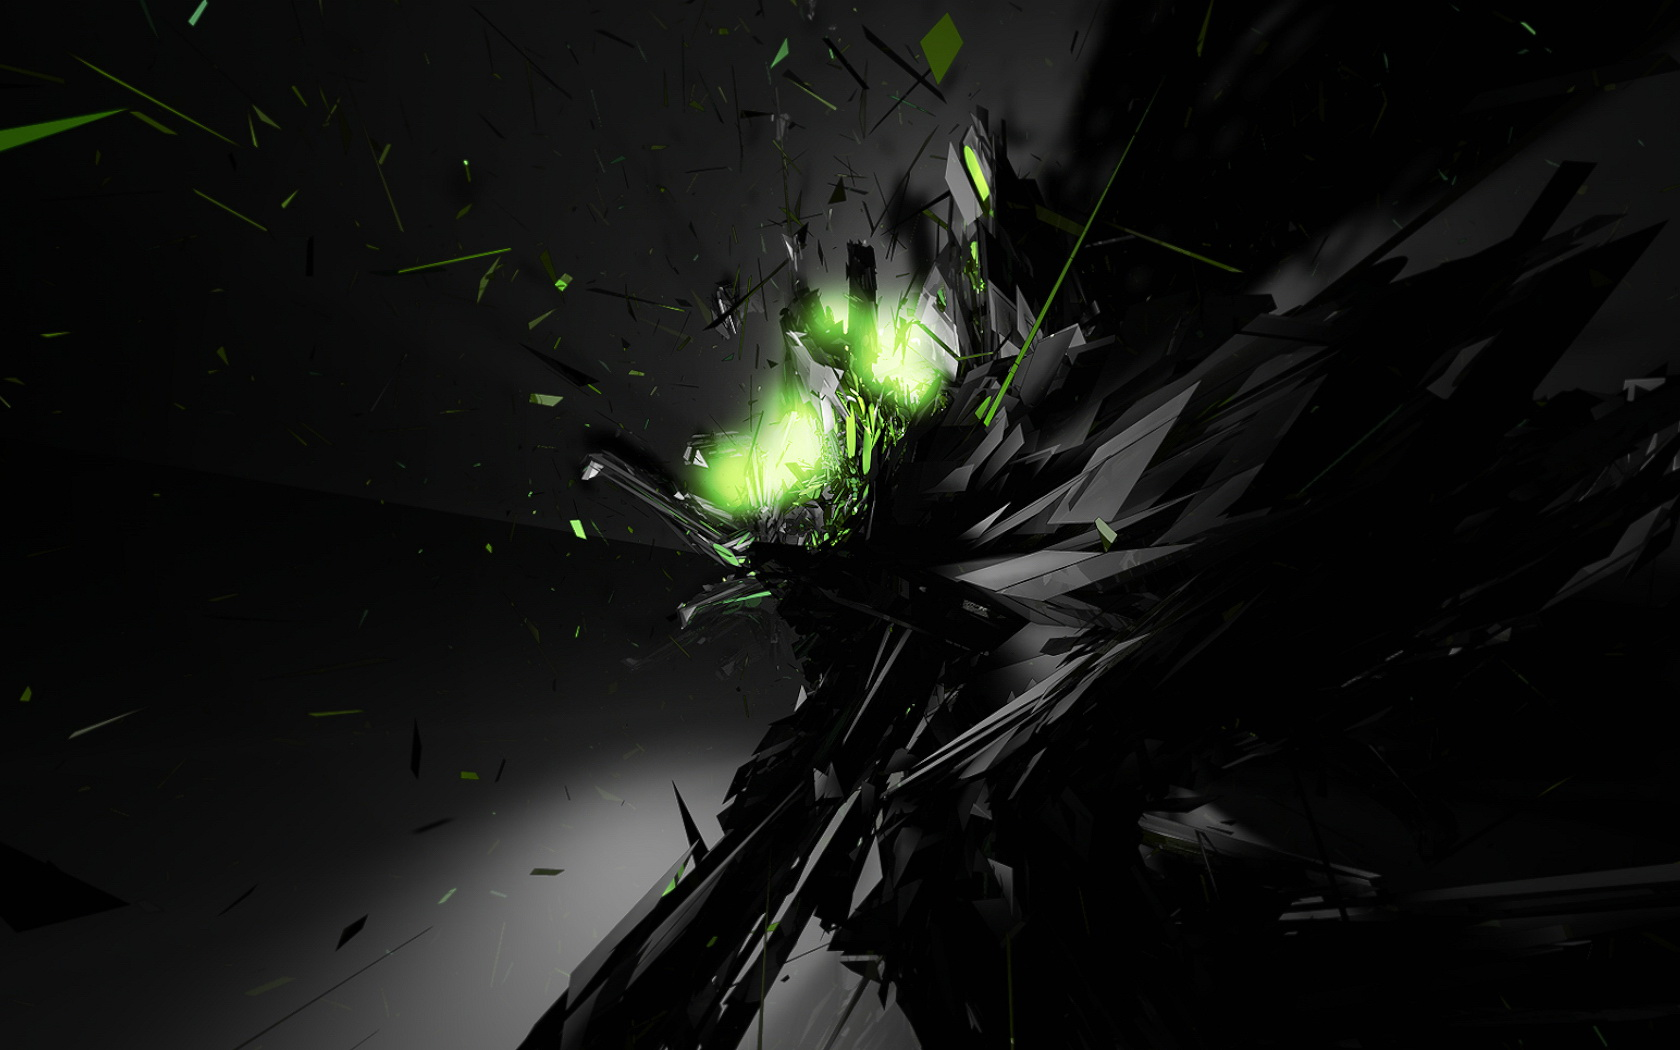 Dark Explode Abstract 239.39 Kb